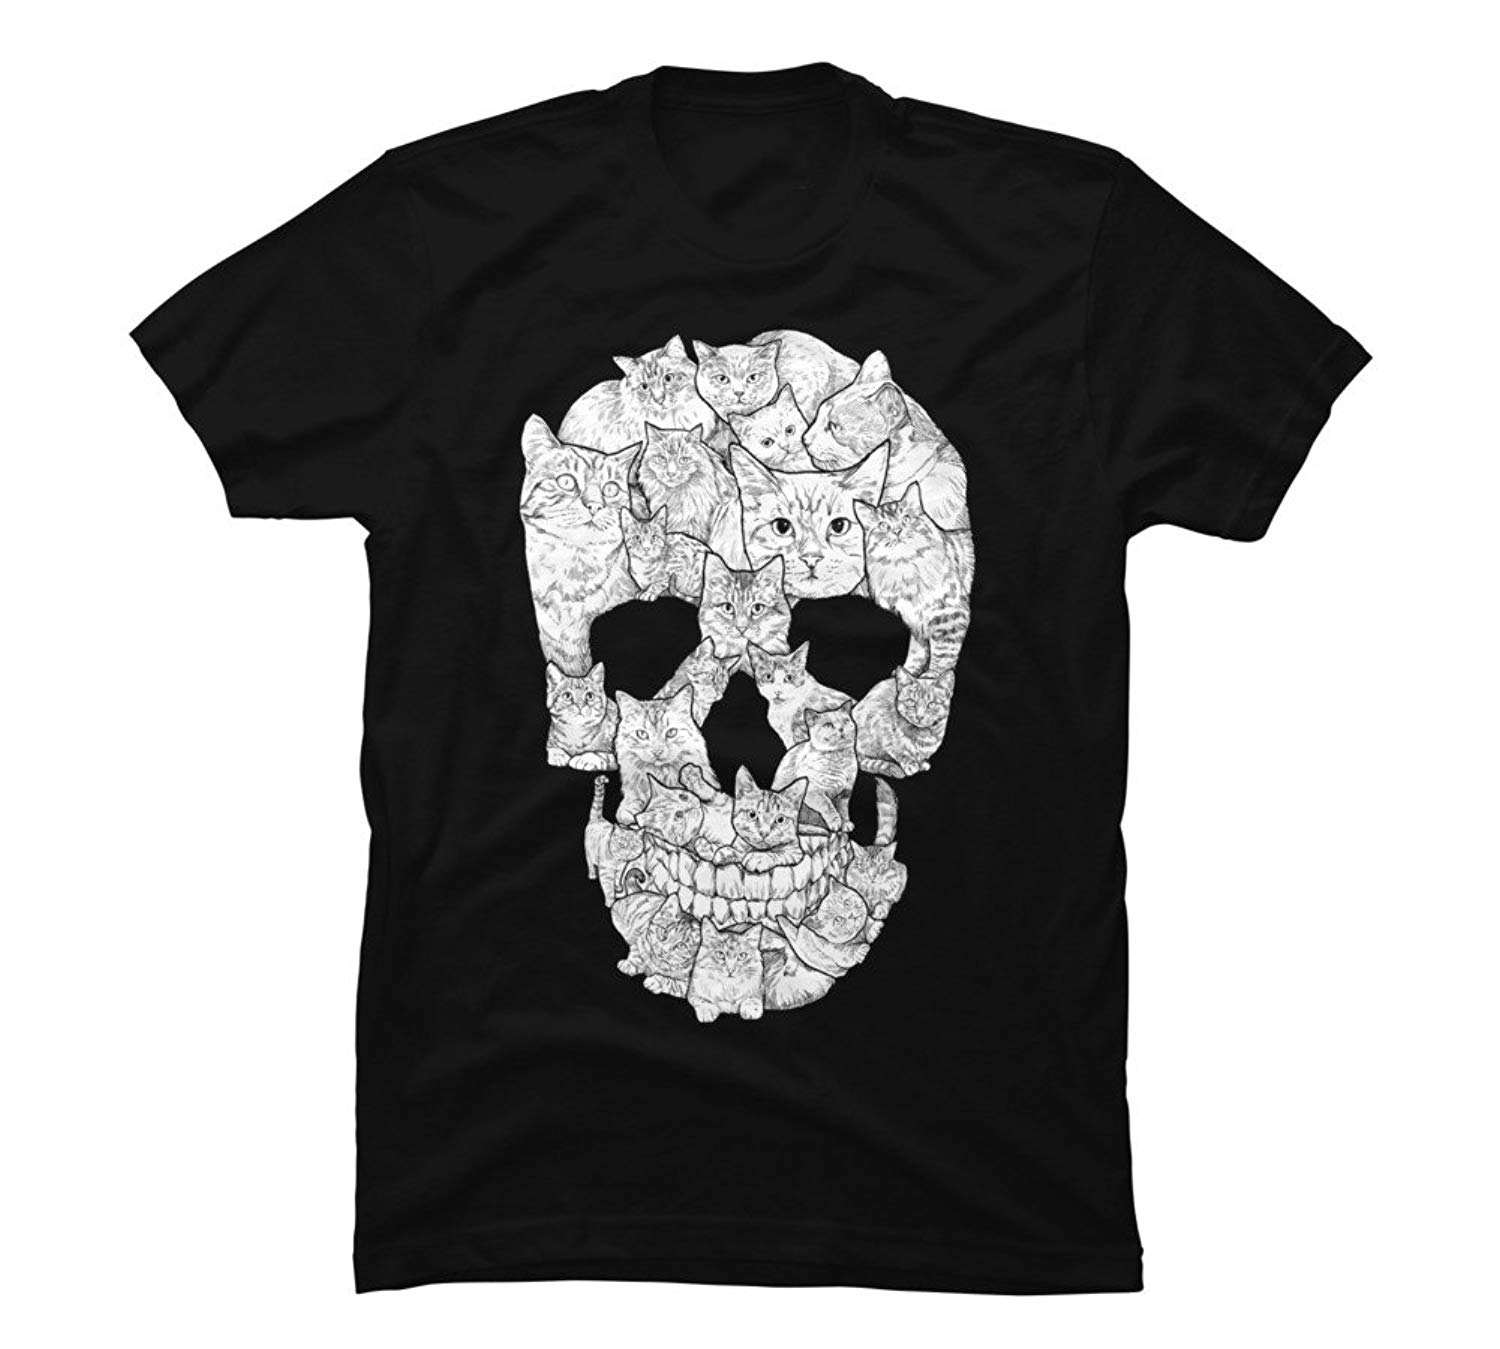 Design By Humans Sketchy Cat Skull Men's Graphic T Shirt Free shipping newest Fashion Classic Funny Unique gift